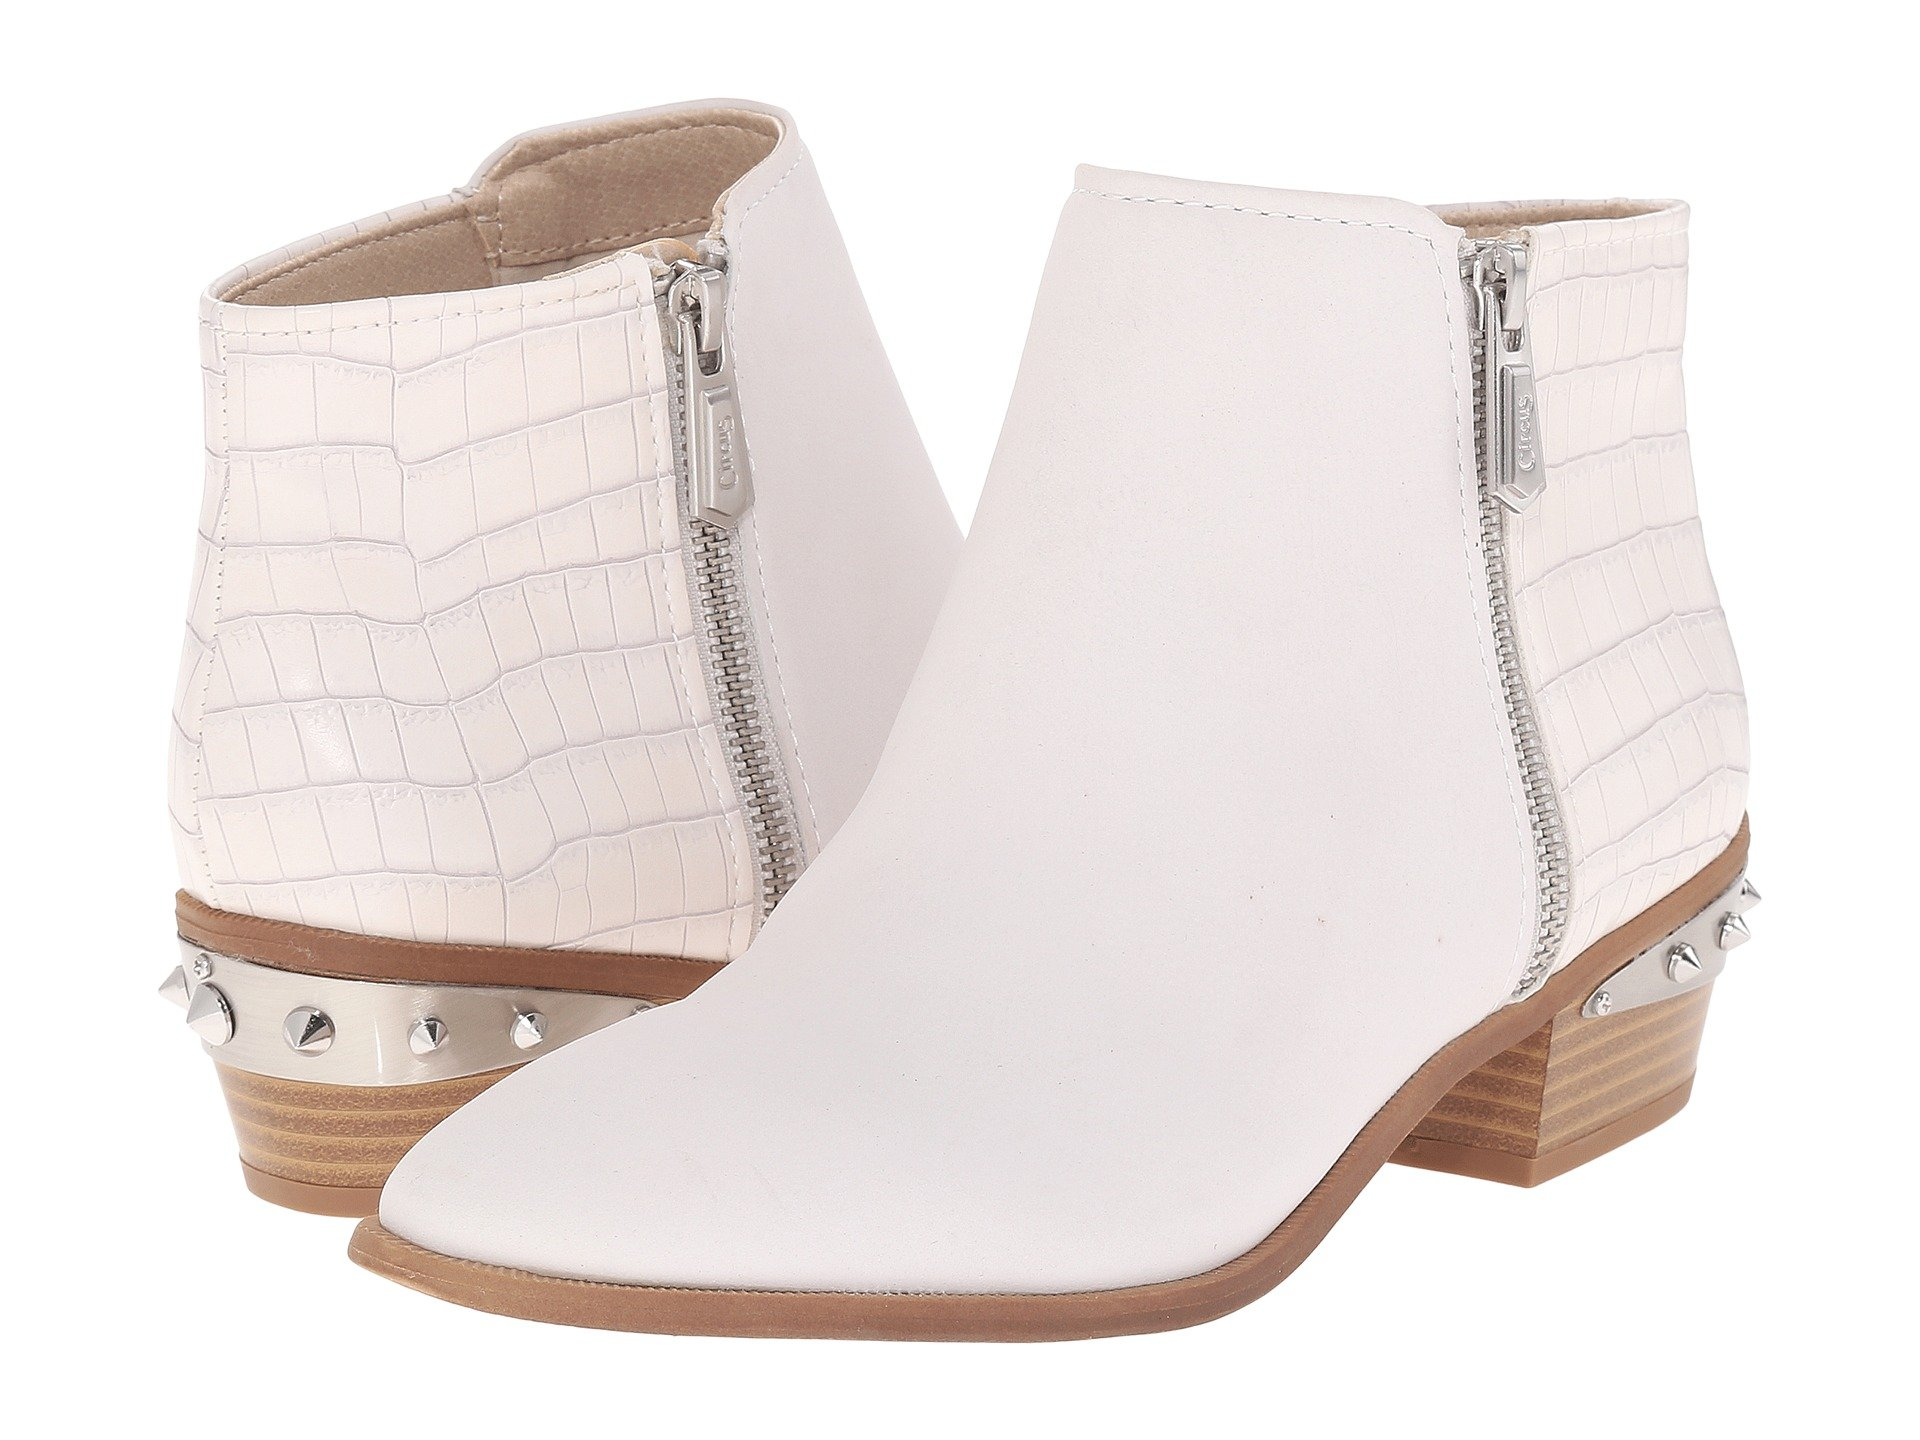 9ad86365ff19e Circus By Sam Edelman Holt In White Gobi Leather Mini Croco ...